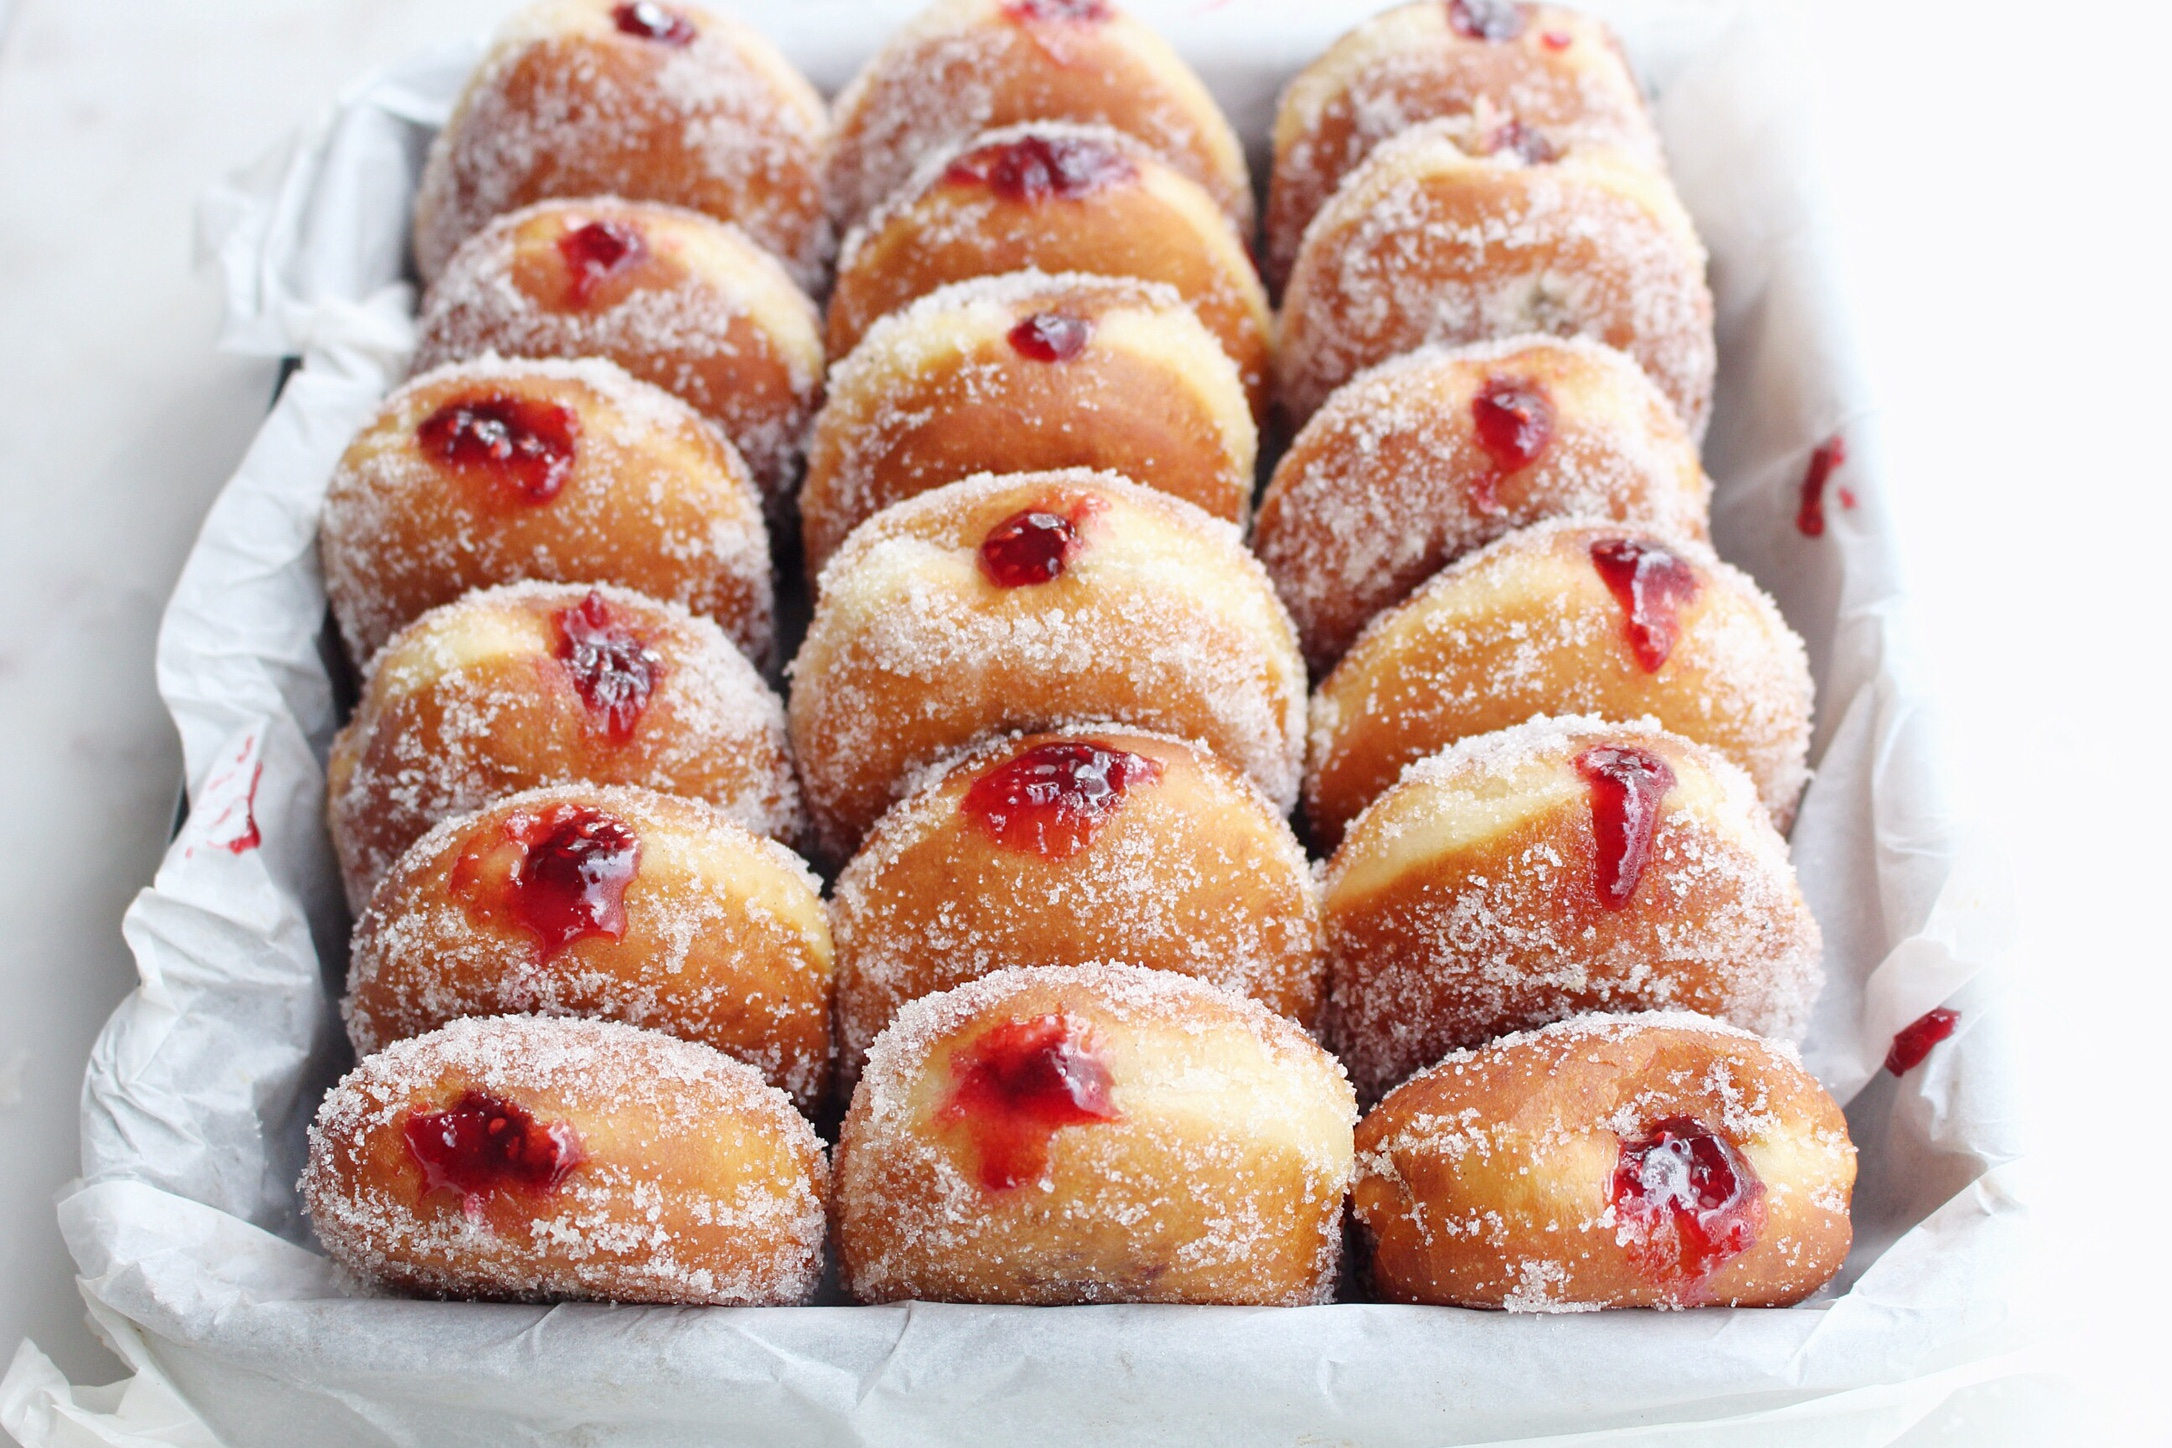 20 Steps On How To Make A Jelly Jammed Doughnut